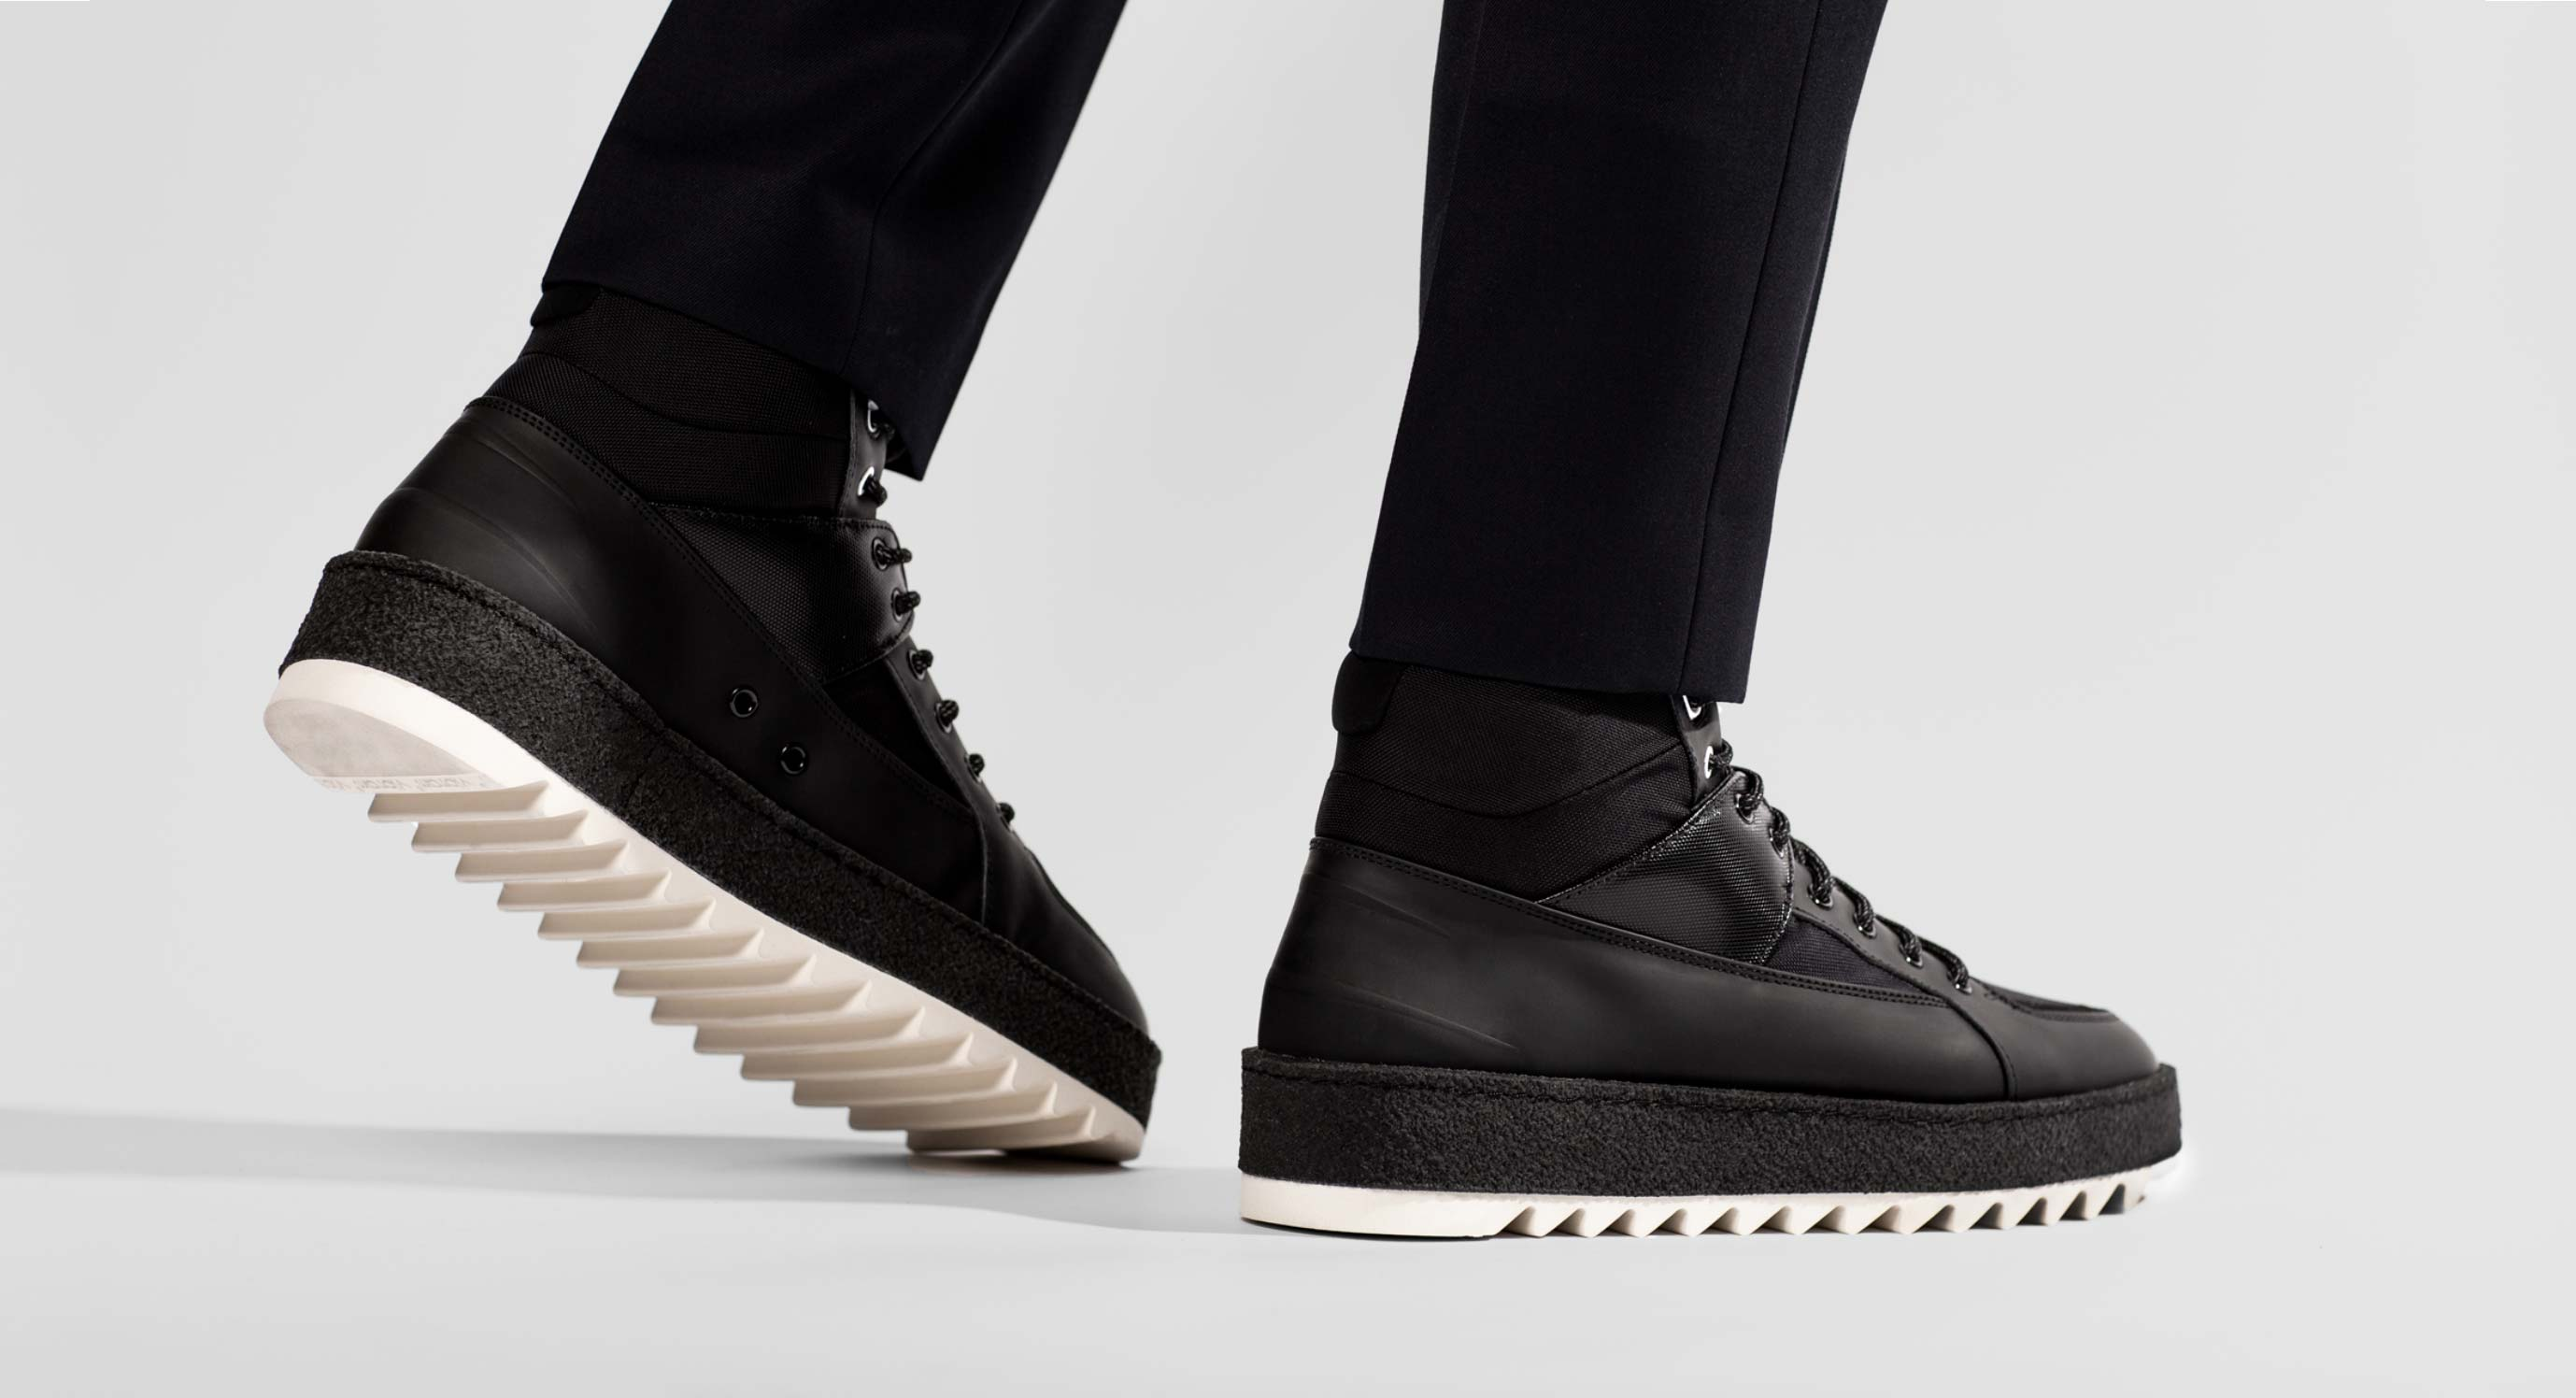 The Tech Revolution: ETQ Amsterdam's All-New Winter Sneakers